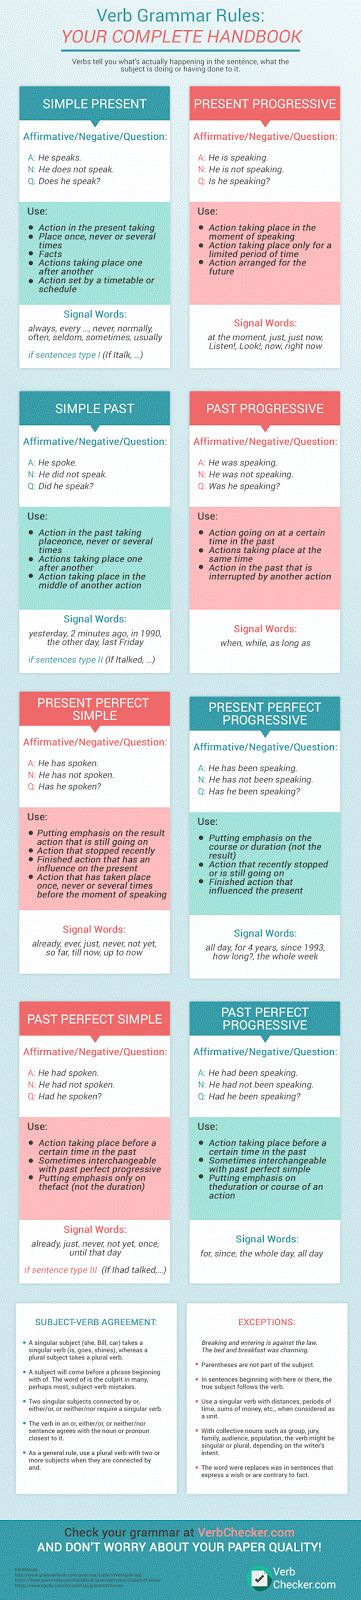 Verb Grammar Rules: Your Complete Handbook #infographics #grammer #english #speaking